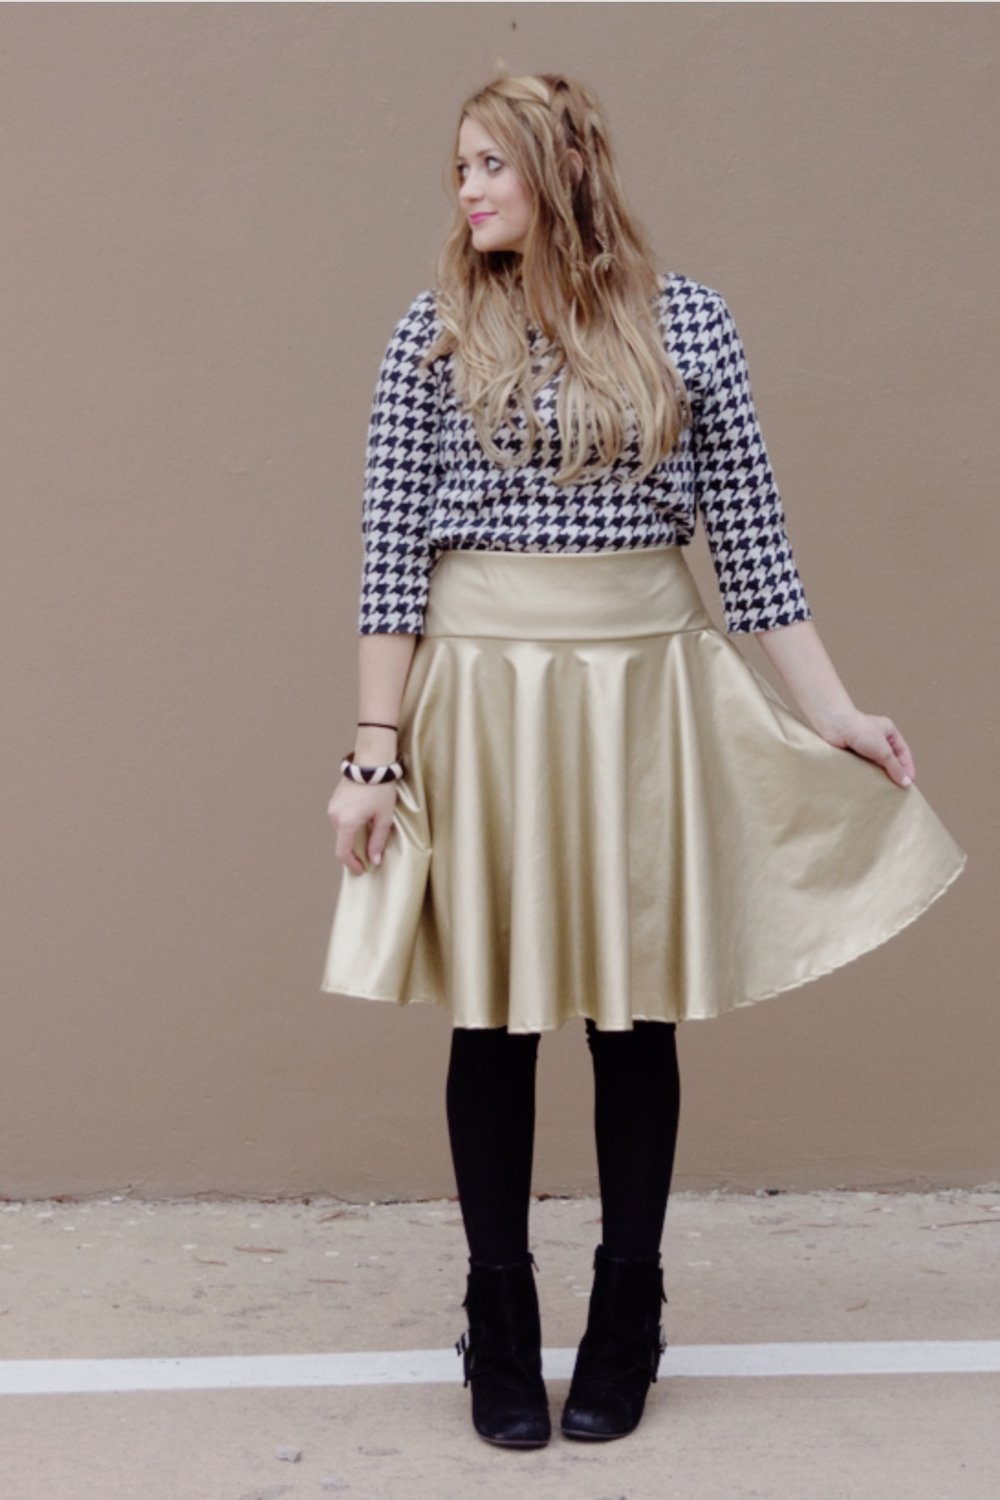 Pleather Circle Skirt by See Kate Sew